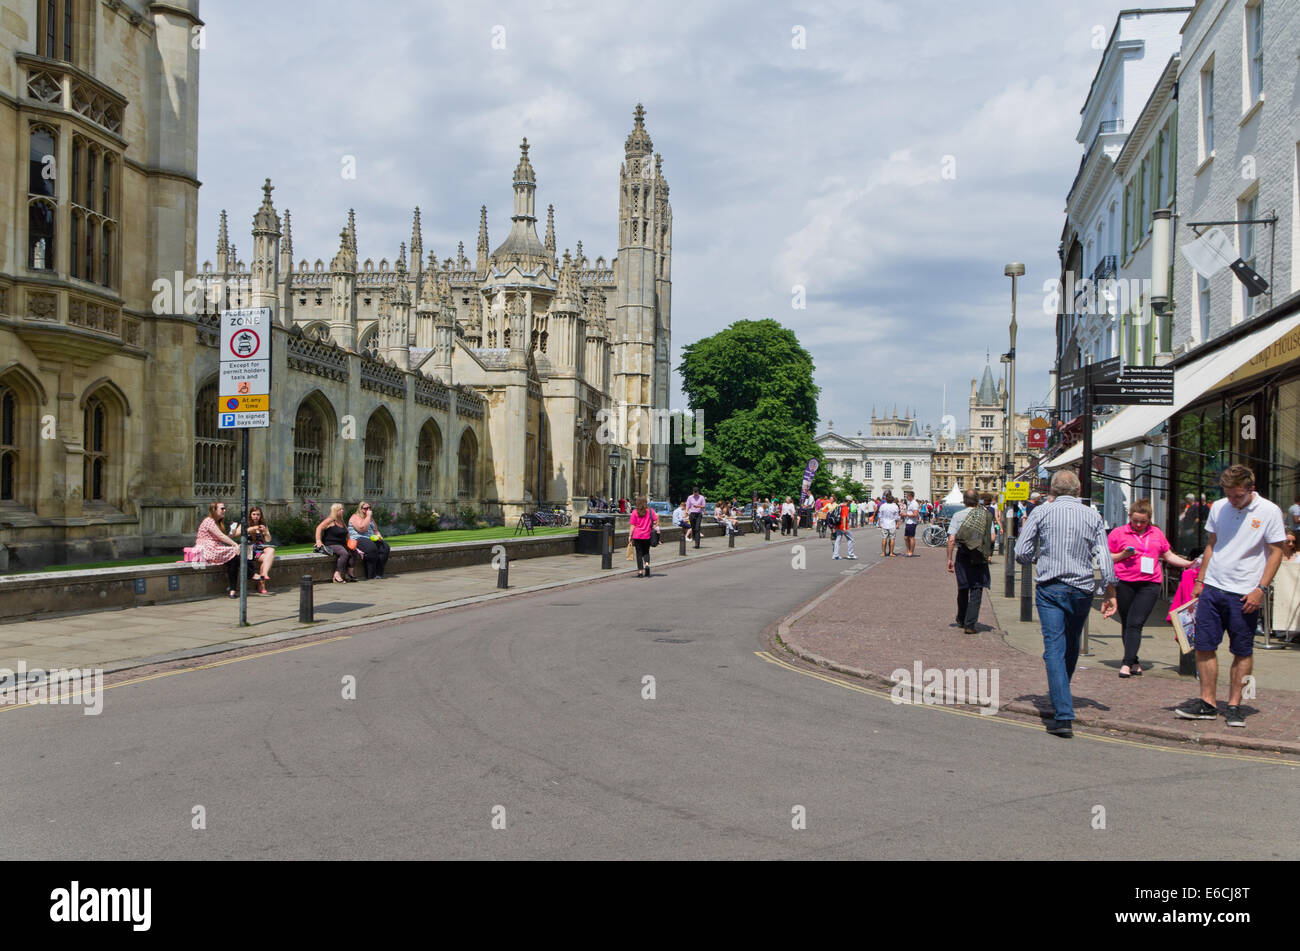 The view down Kings Parade, Cambridge on a warm Summer afternoon; King's College is on the right hand side. - Stock Image